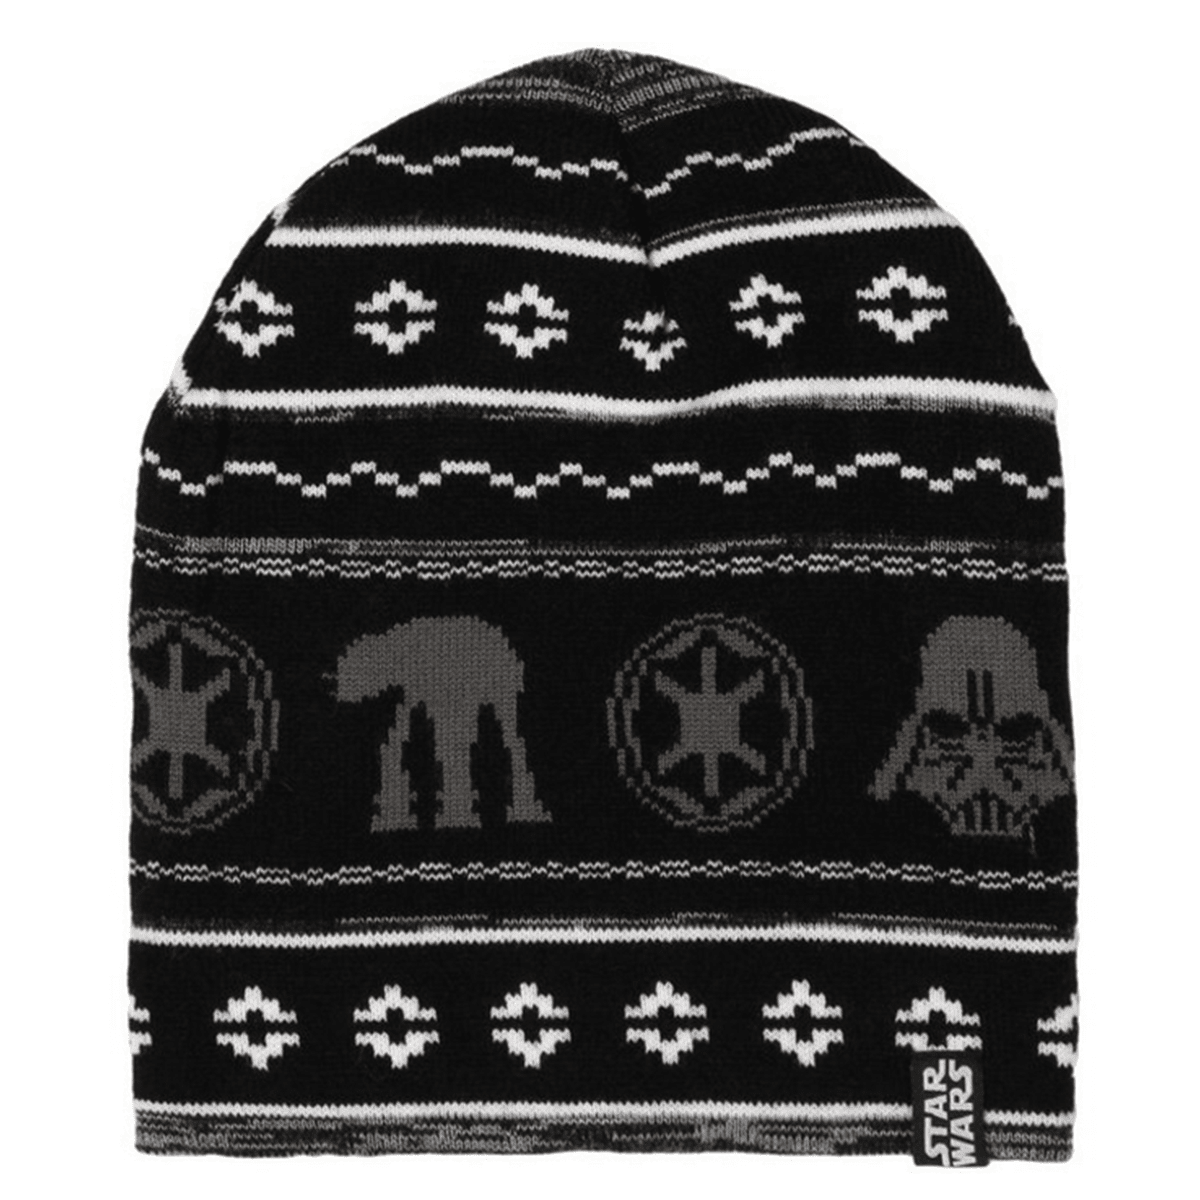 ... Star Wars Knitted Christmas Beanie Hat best quality 3a36e e1bf8 ... 9c4577cdc034